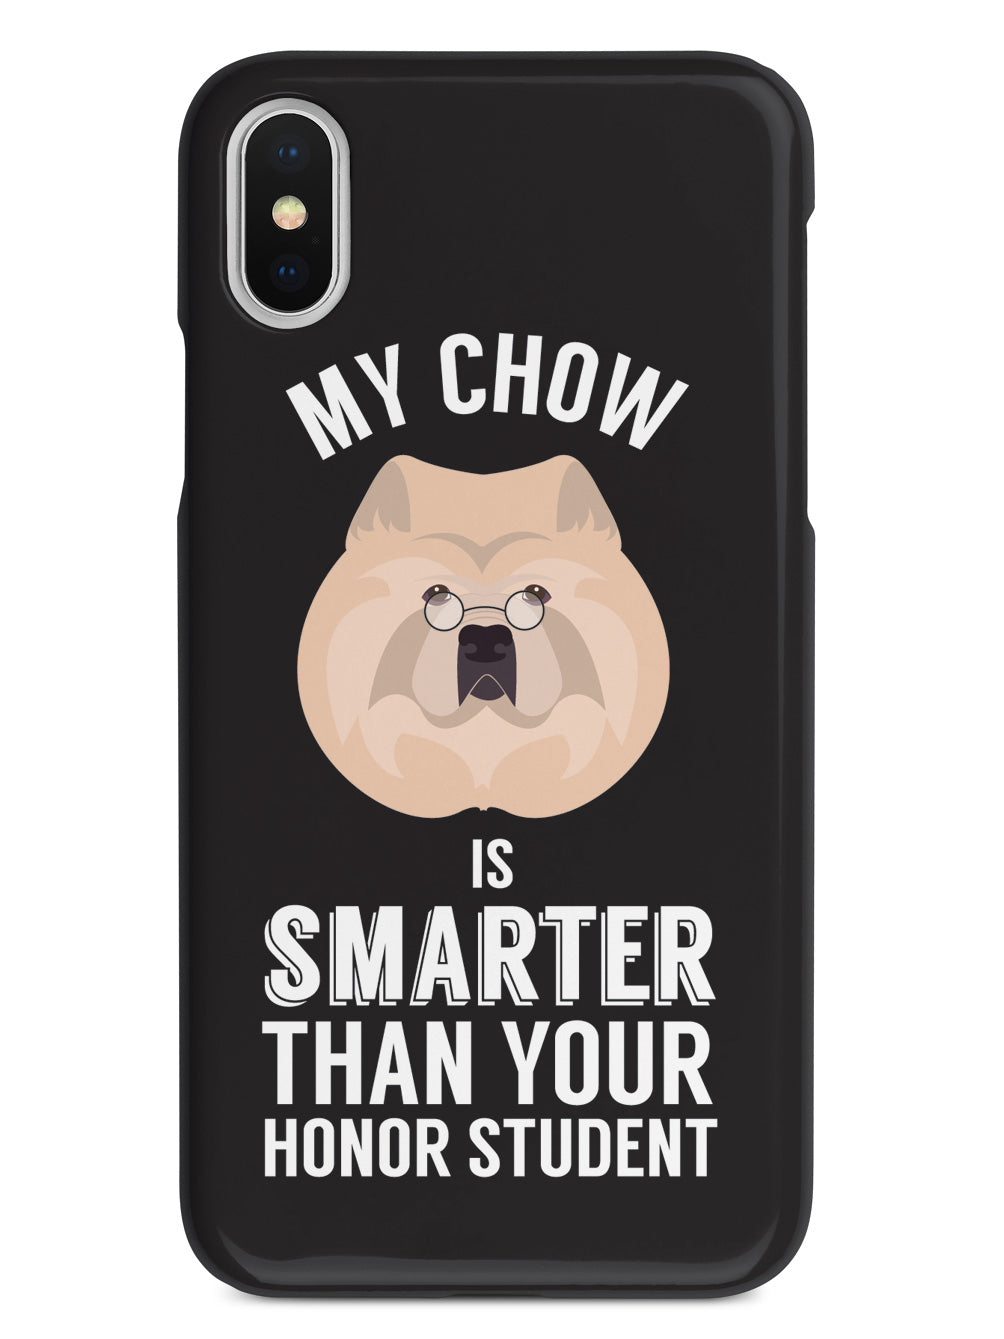 Smarter Than Your Honor Student - Chow Case